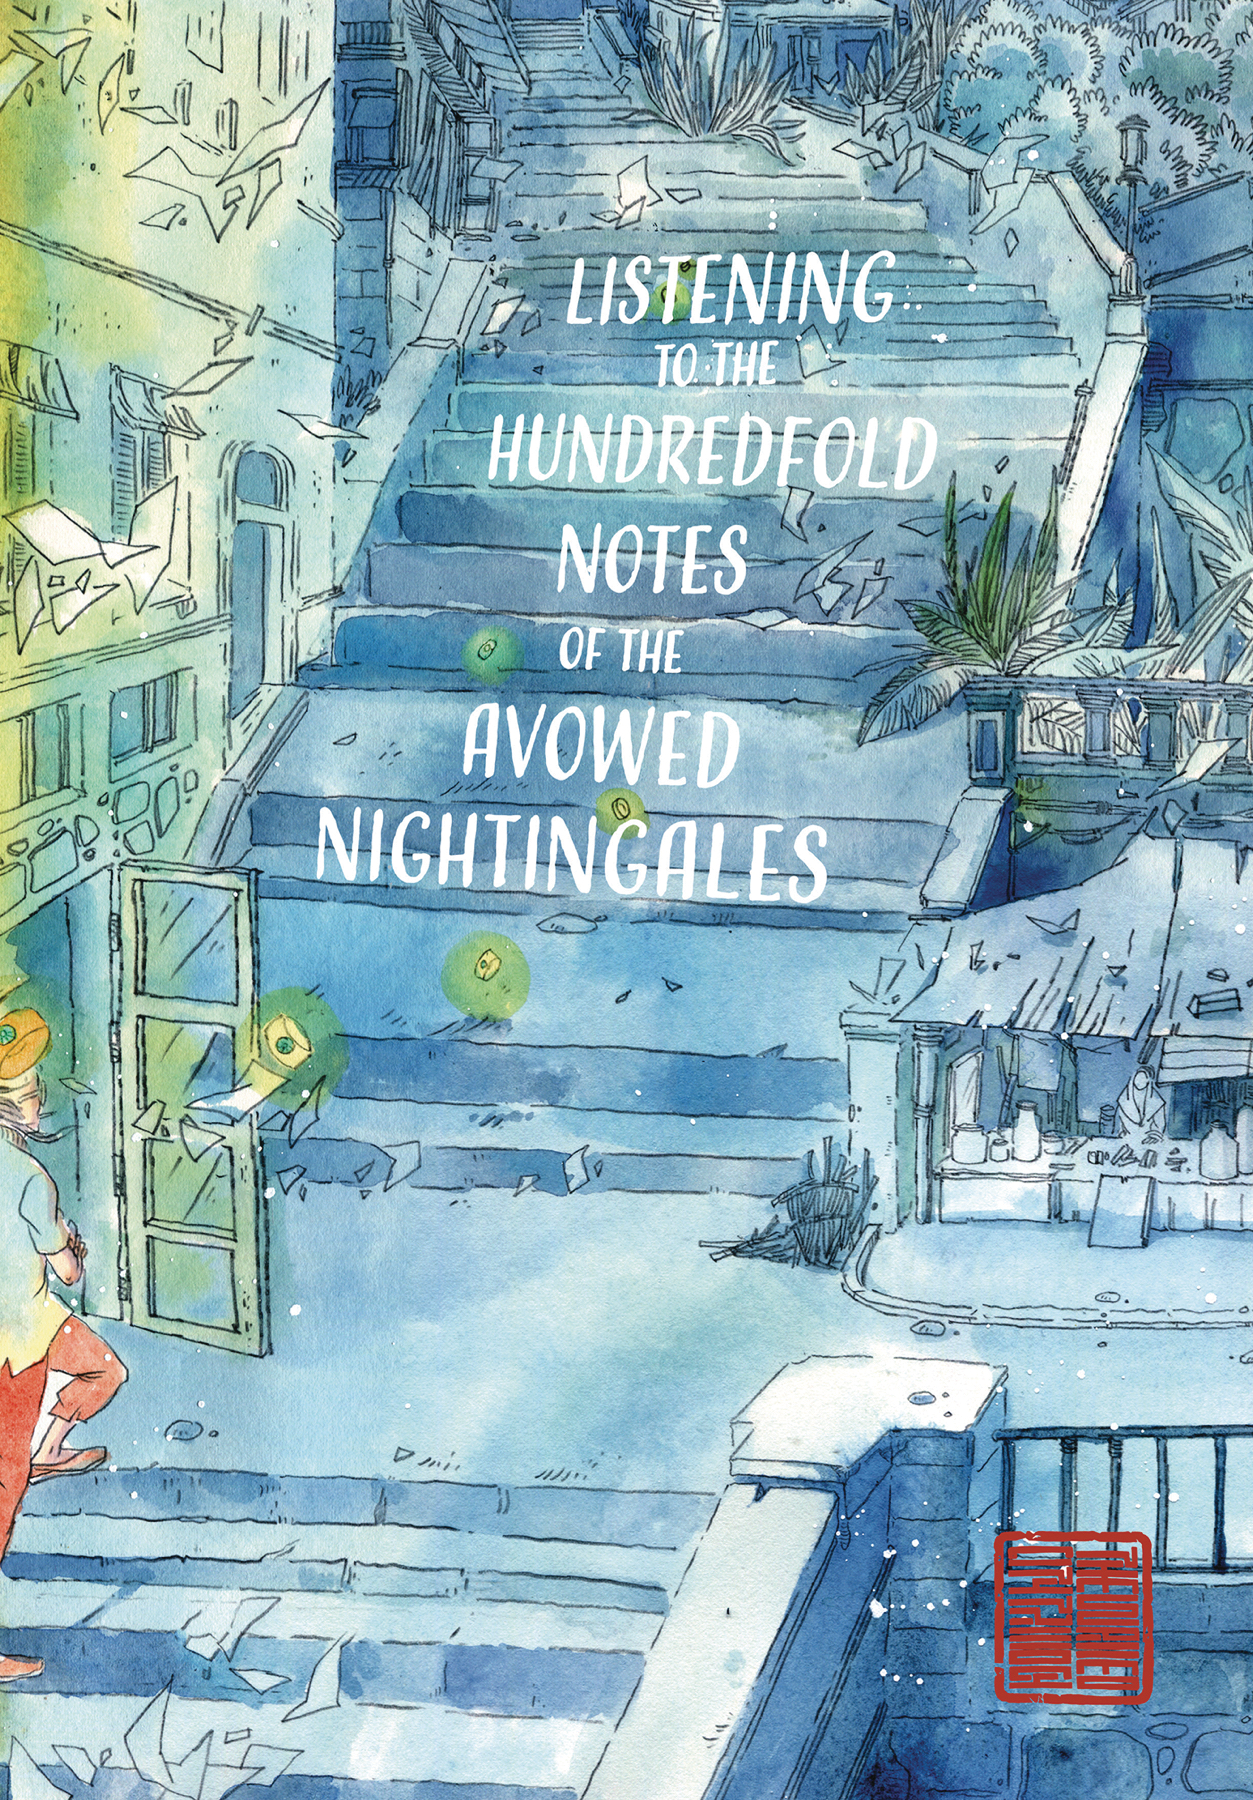 NOTES O/T AVOWED NIGHTINGALES WALLED CITY VOL 03 TRILOGY